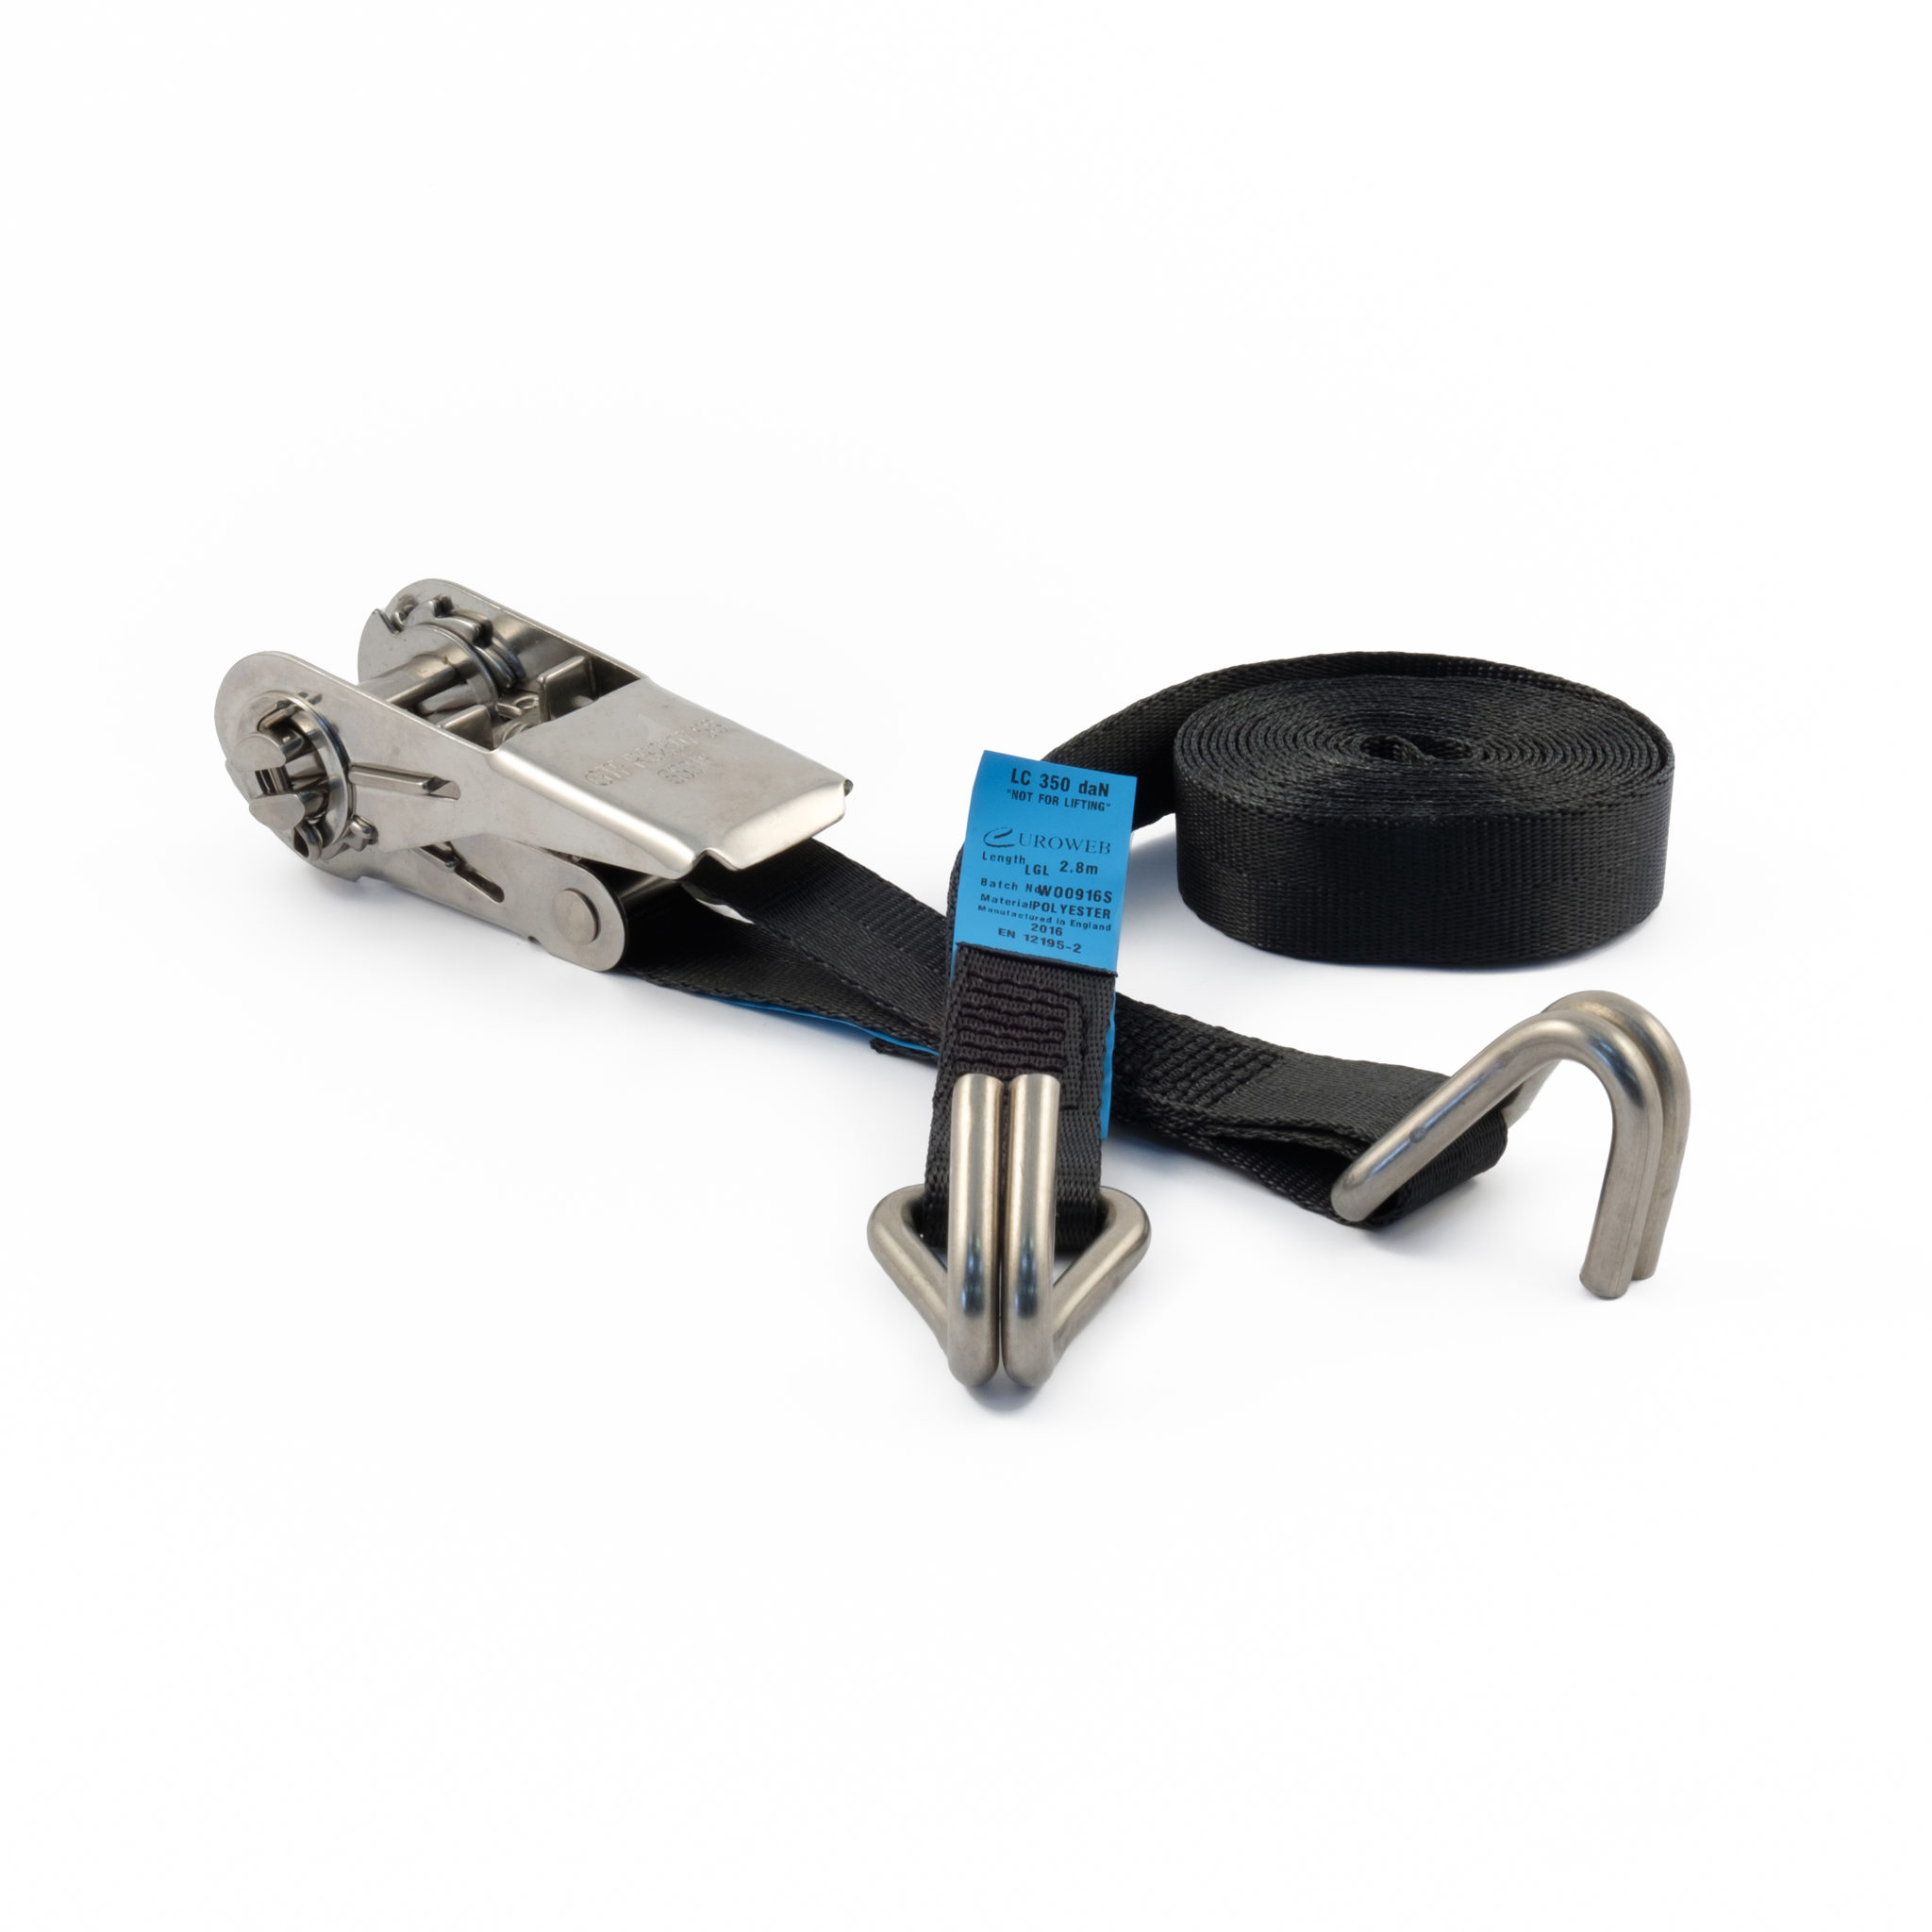 25mm Stainless Steel Ratchet Straps With Wire Claw Hooks Gtf